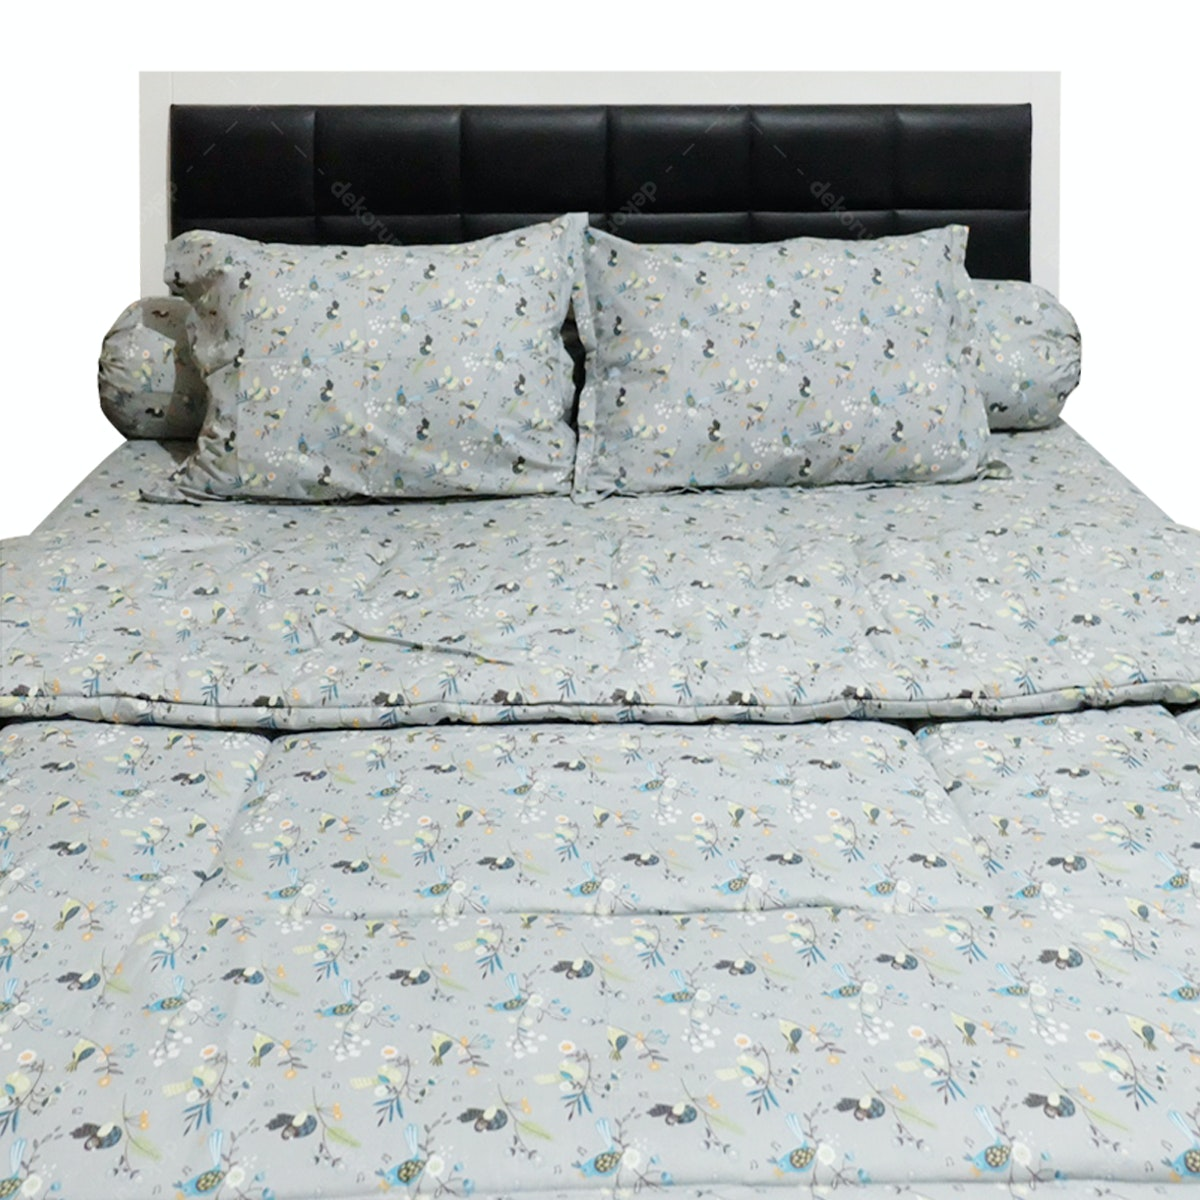 Sleep Buddy Set Sprei dan Bed Cover Morning Tweet Grey CVC 120x200x30